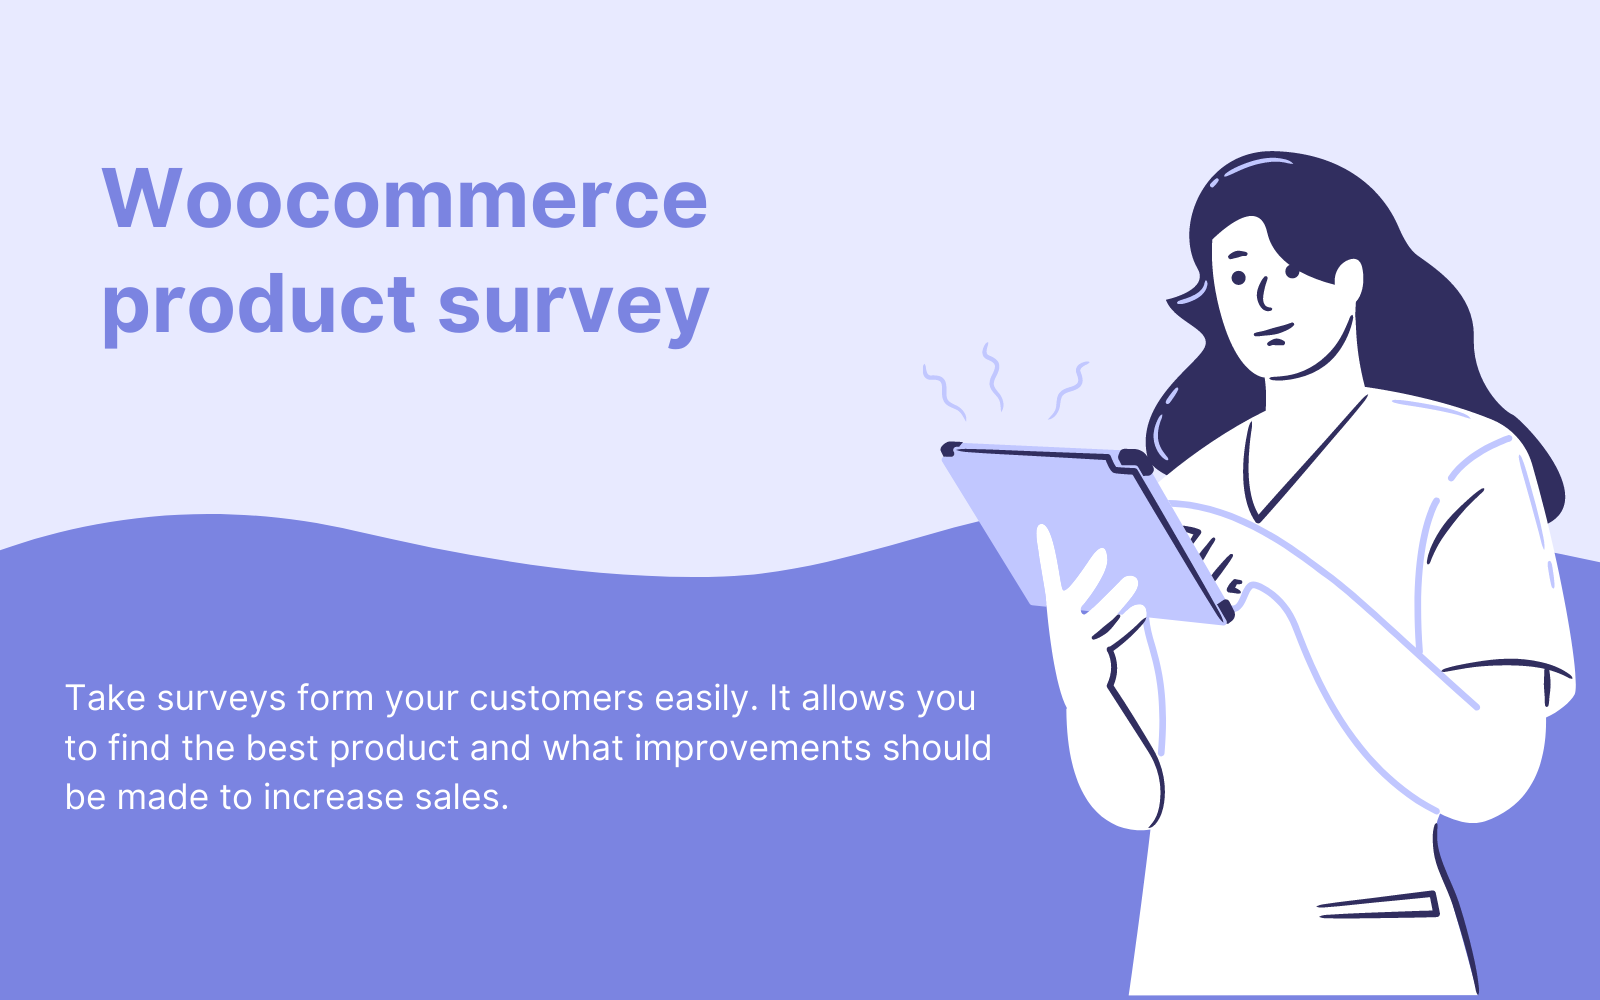 WC Product Survey – Woocoomerce product survey №111463